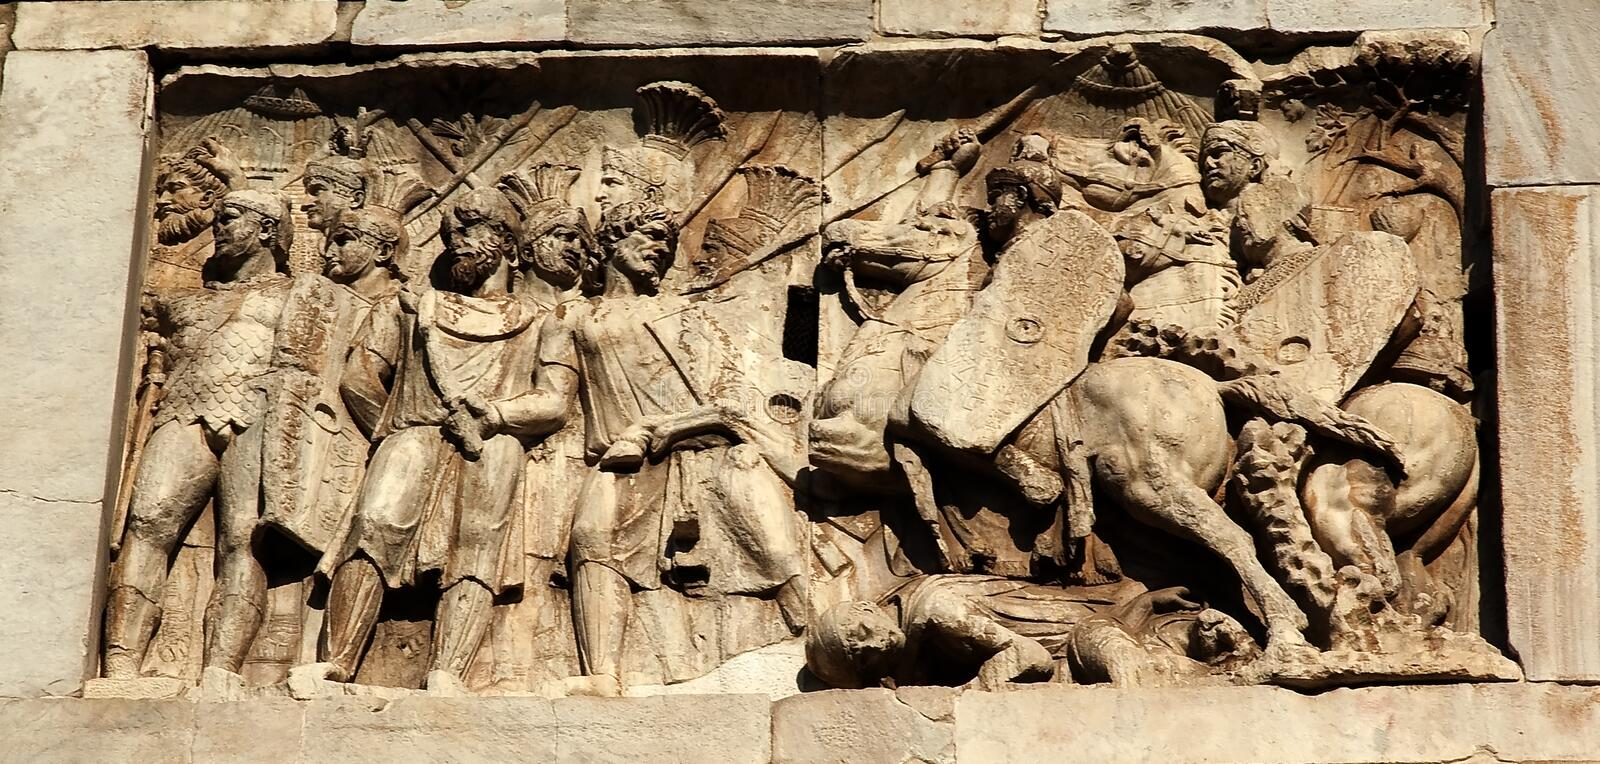 Details Constantine Arch Roman Soldiers Rome stock image